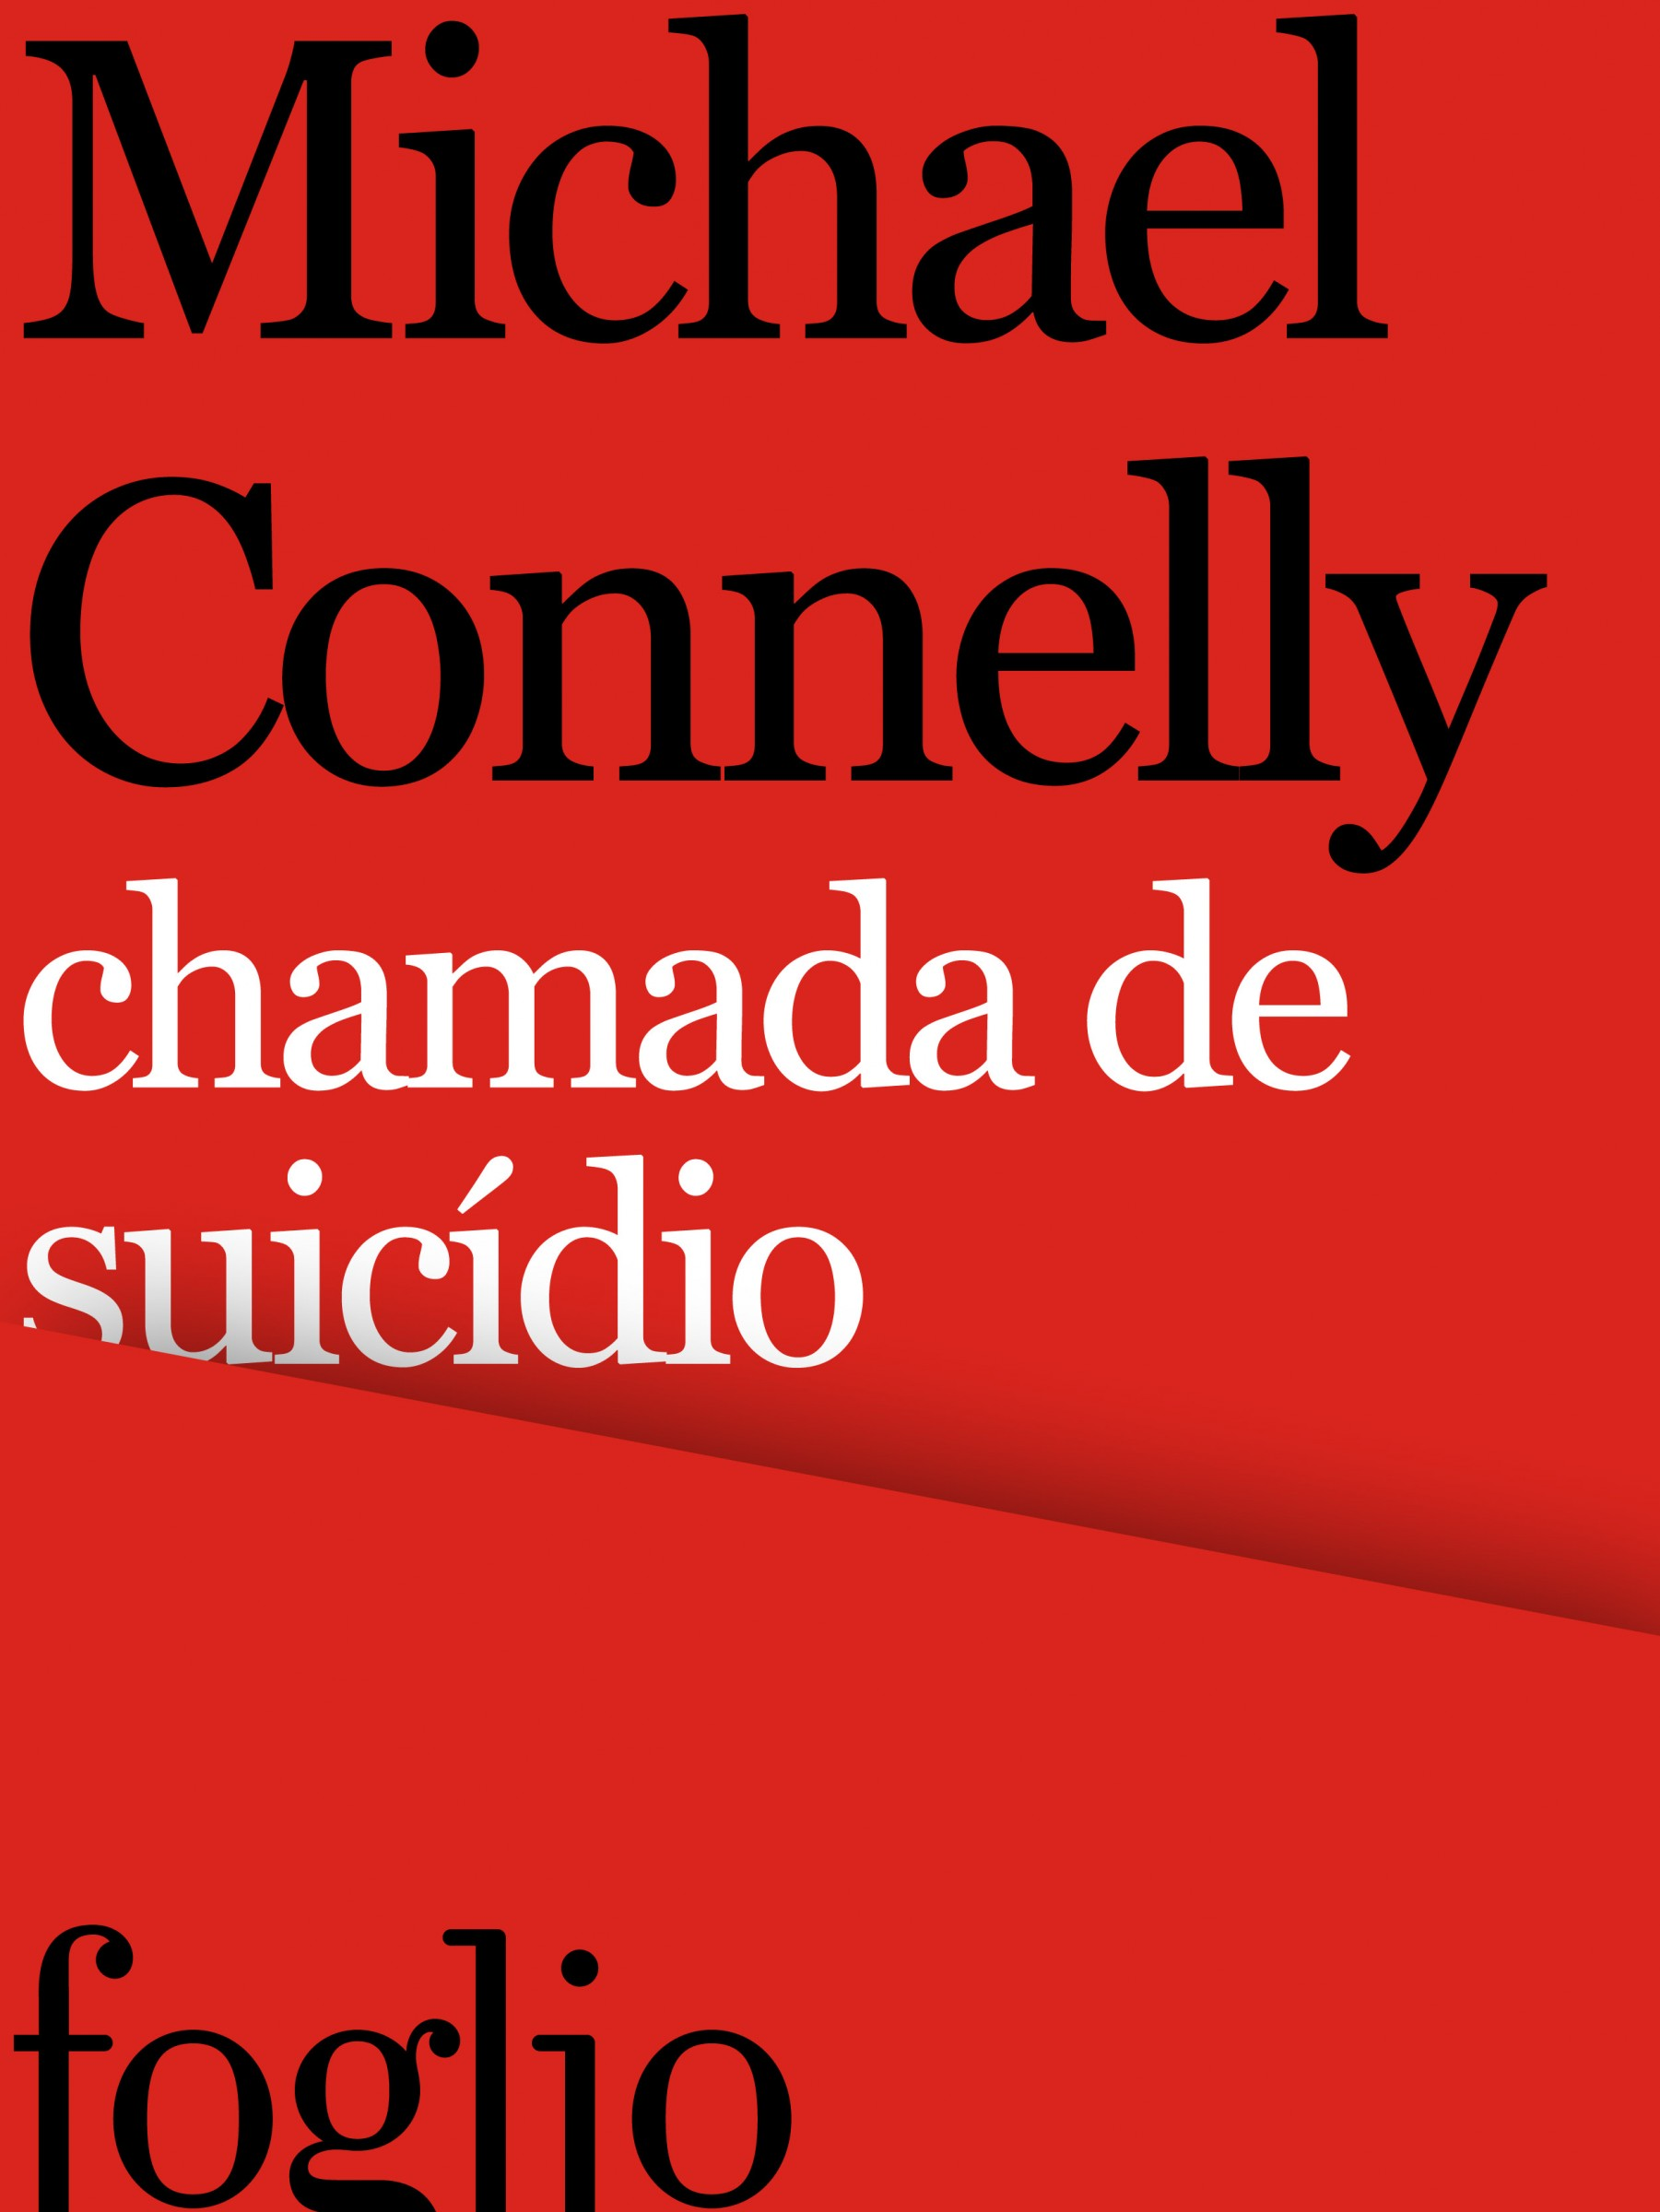 Michael Connelly - Chamada de suicídio